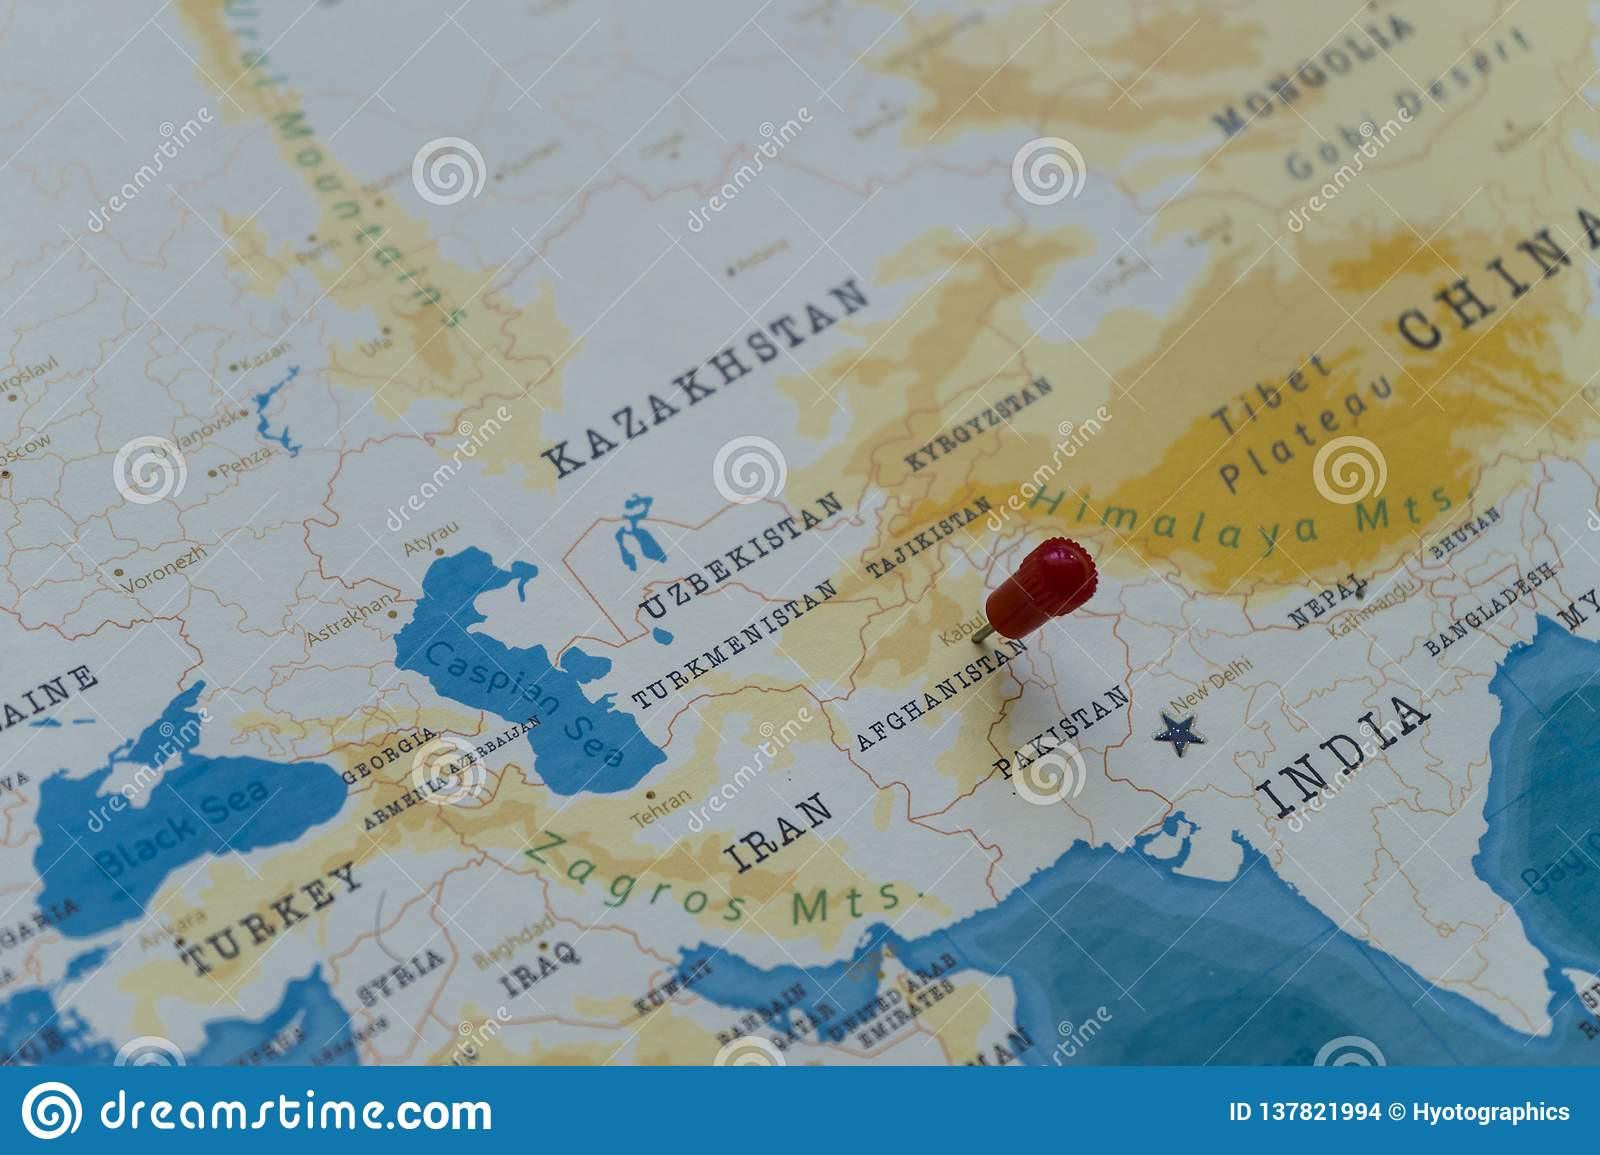 A Pin On Kabul, Afghanistan In The World Map Stock Photo - Image of ...